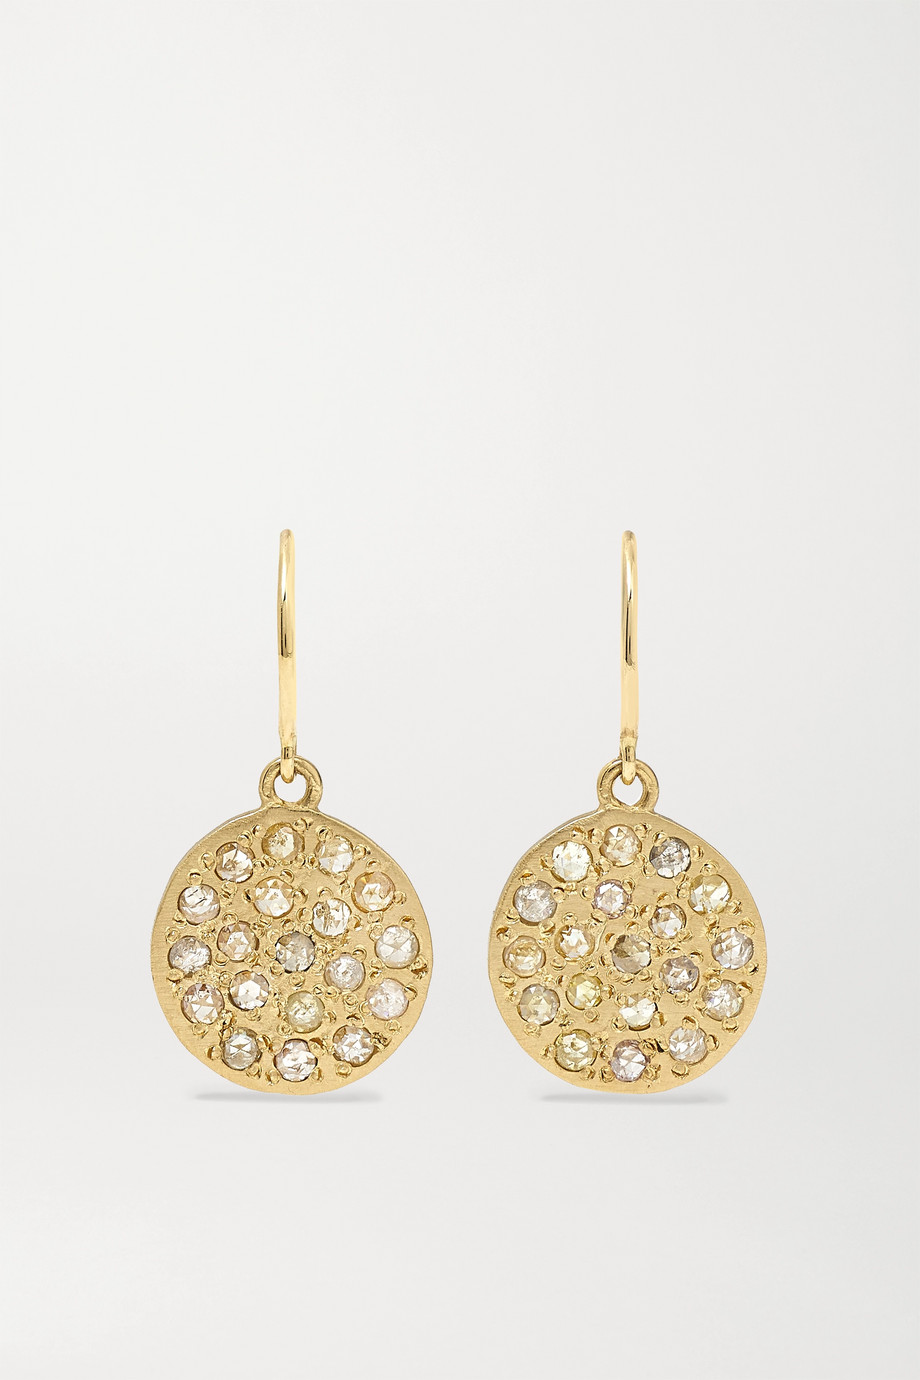 Brooke Gregson Mini Mars 14-karat gold diamond earrings